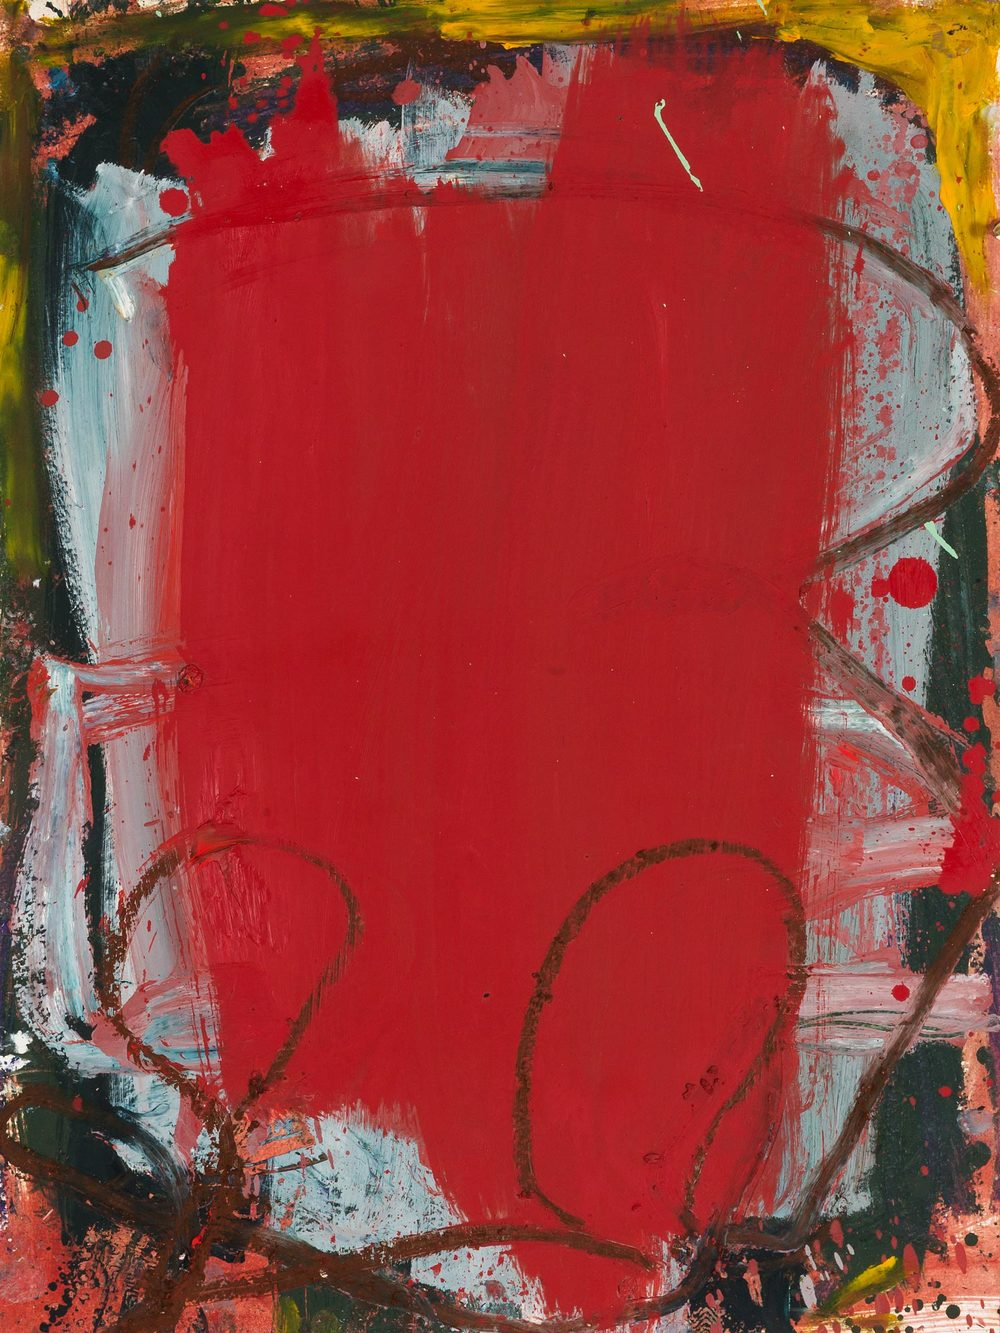 Red Circles  , oil on paper, 24 x 18 in. ©Denise Gale 2013